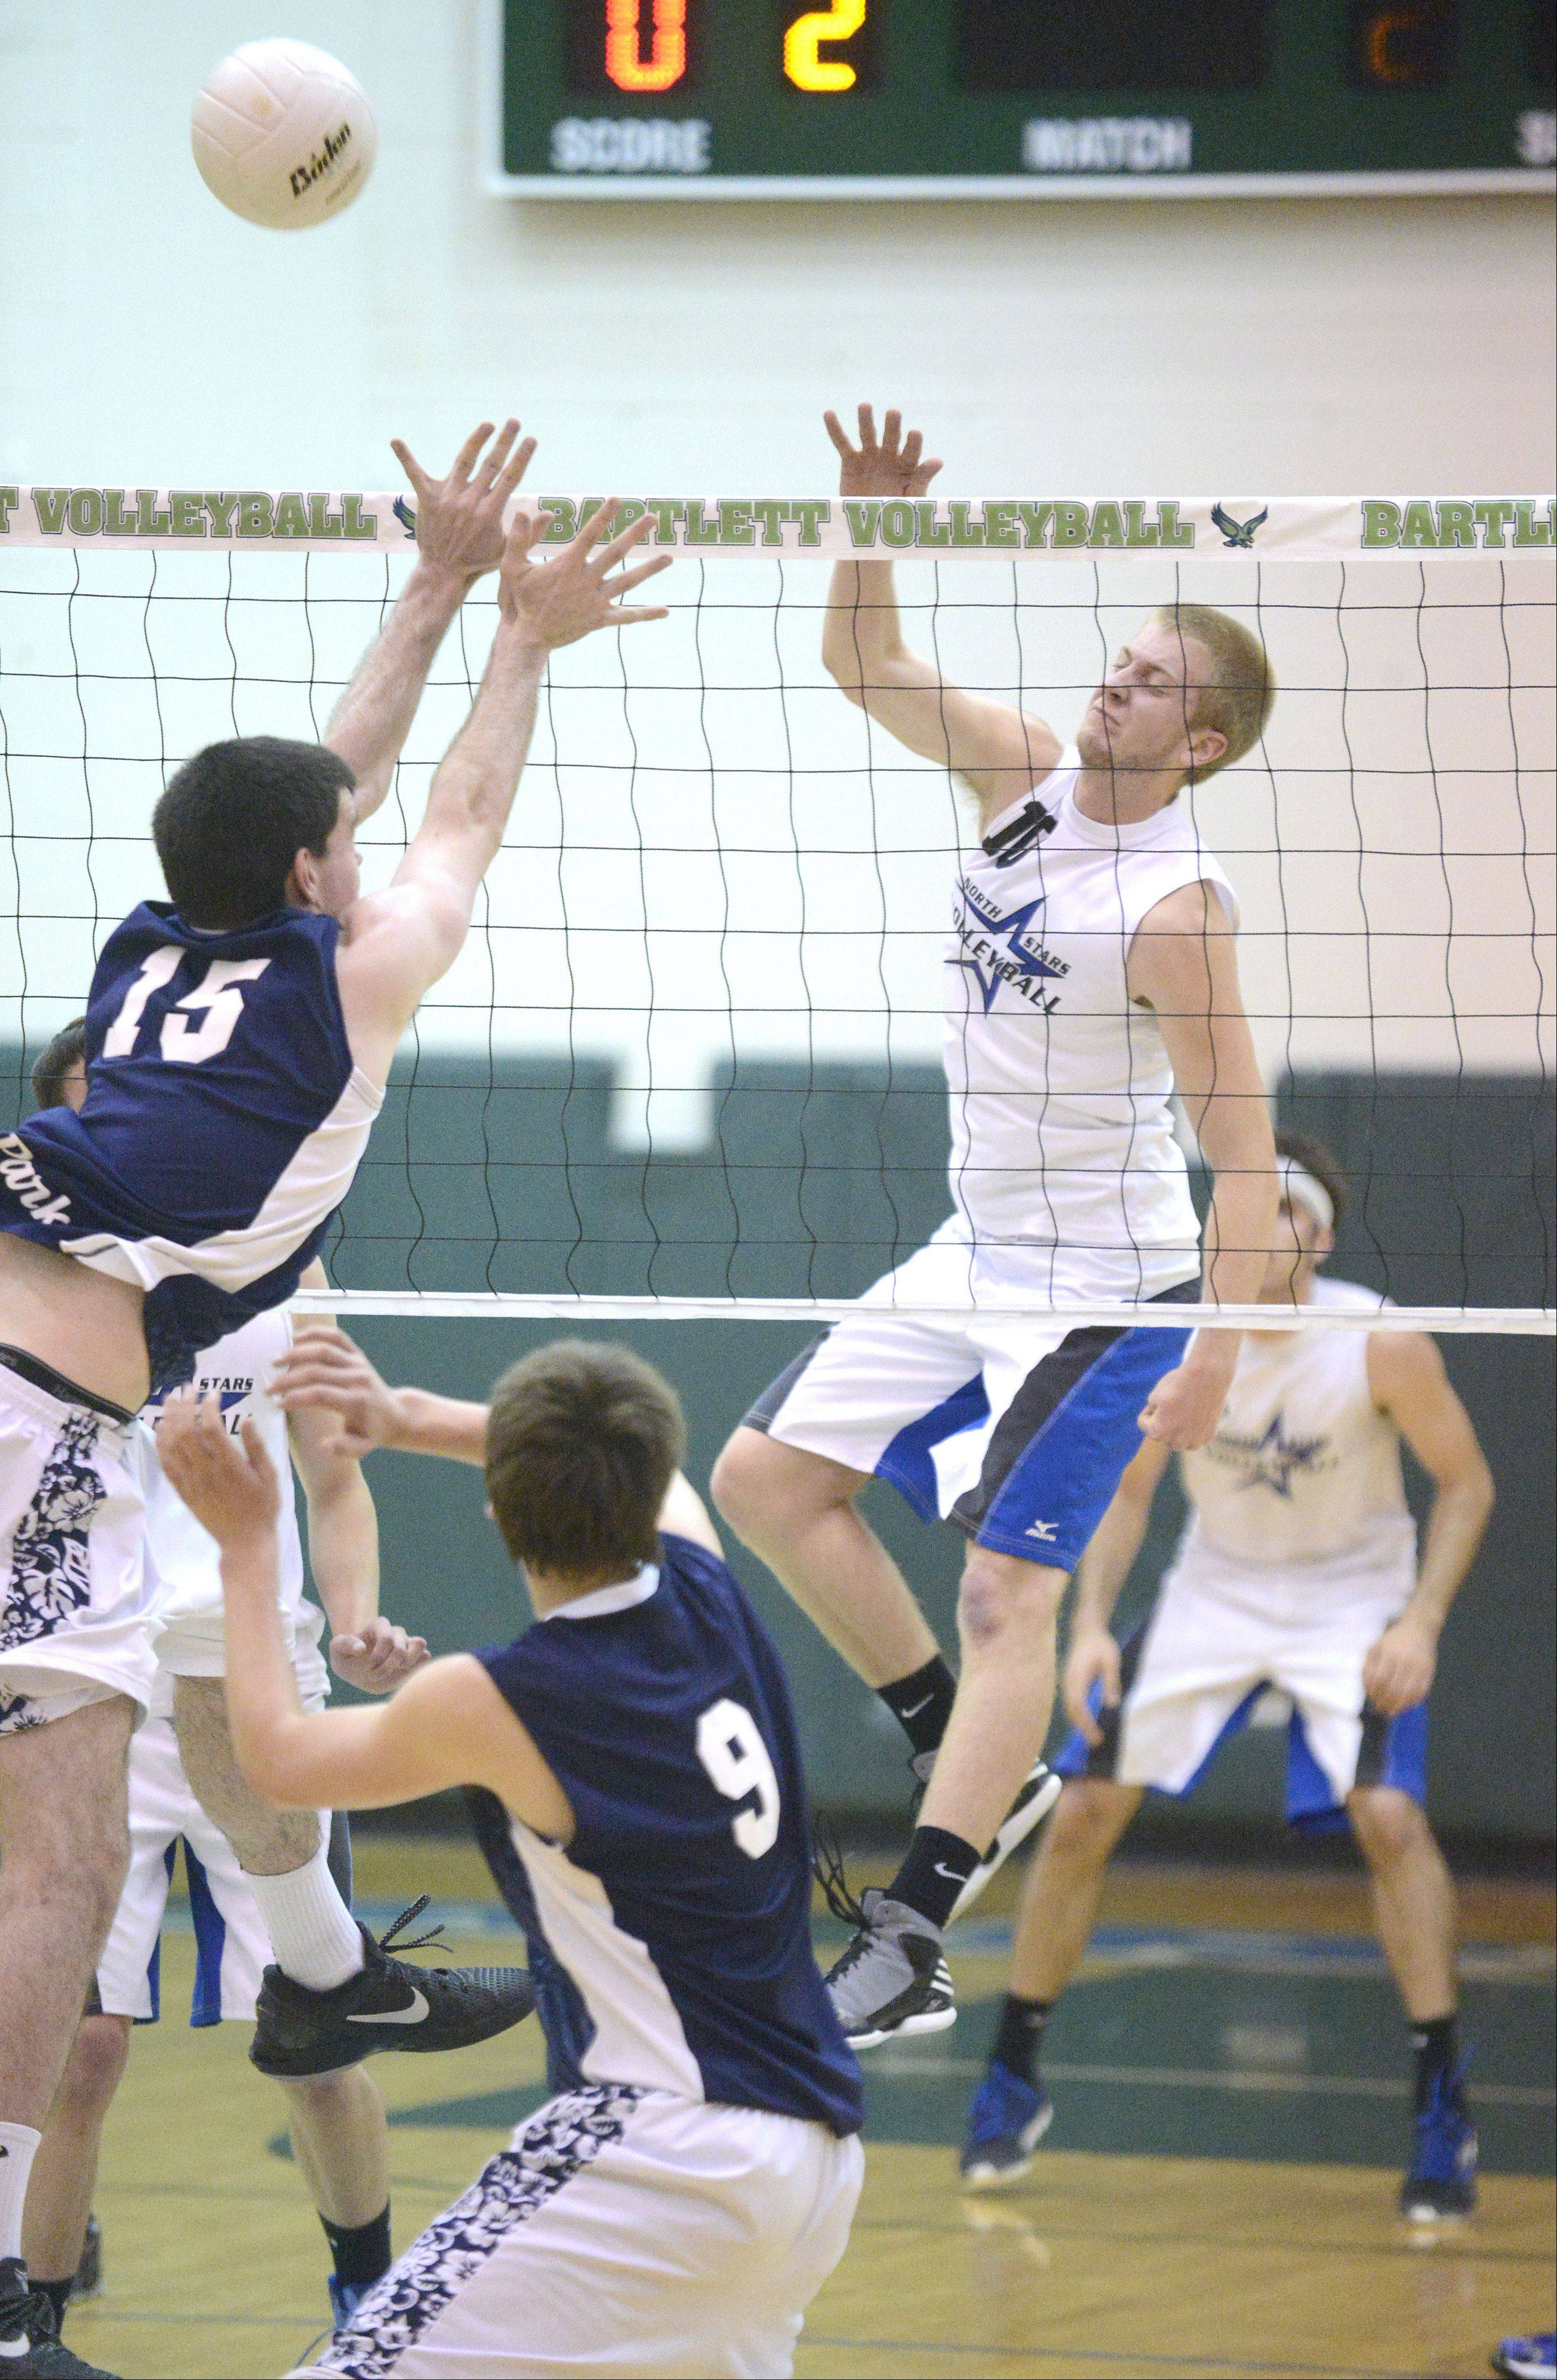 Lake Park's Sean Moore and Quin Krisik attempt a block on a spike by St. Charles North's Kevin Beach in the first game of sectional championship play in Bartlett on Tuesday.